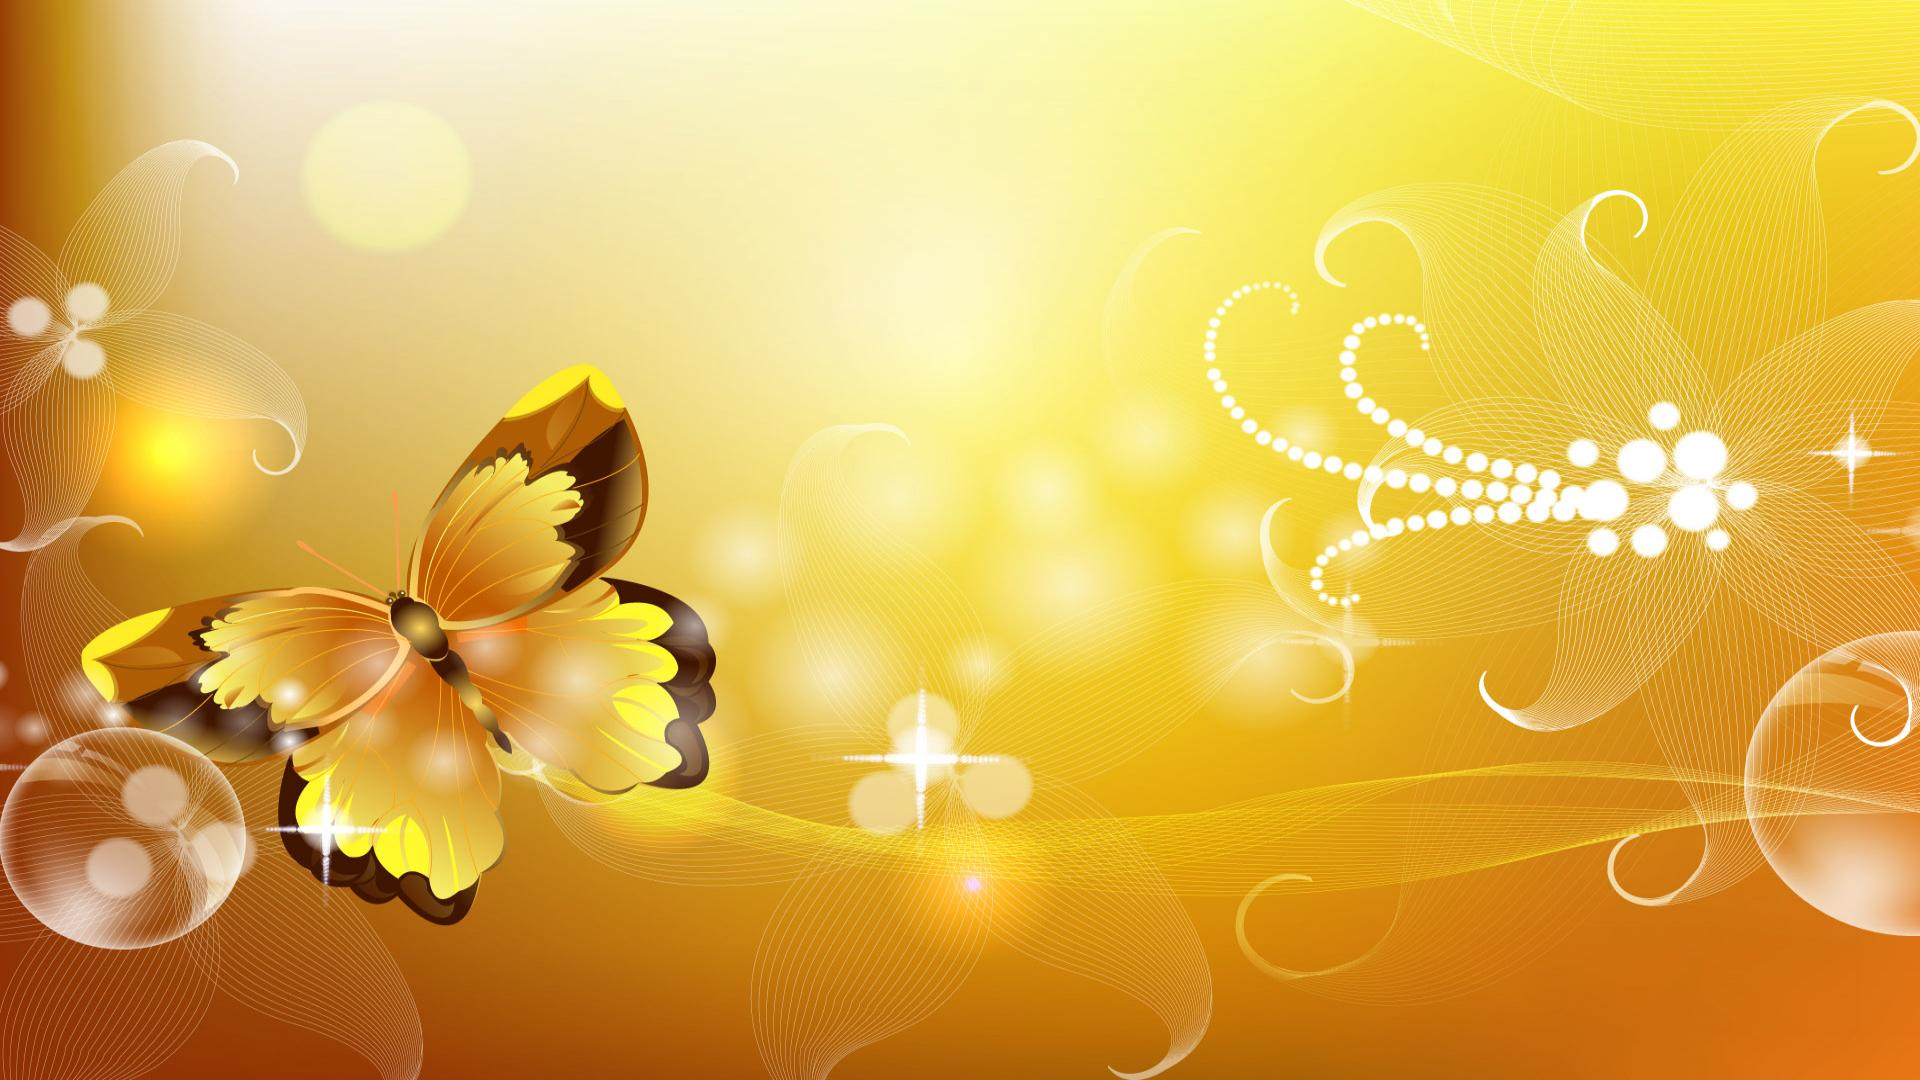 Yellow Butterfly In Yellow Backgrounds Hd Wallpaper | Unique Nature HD